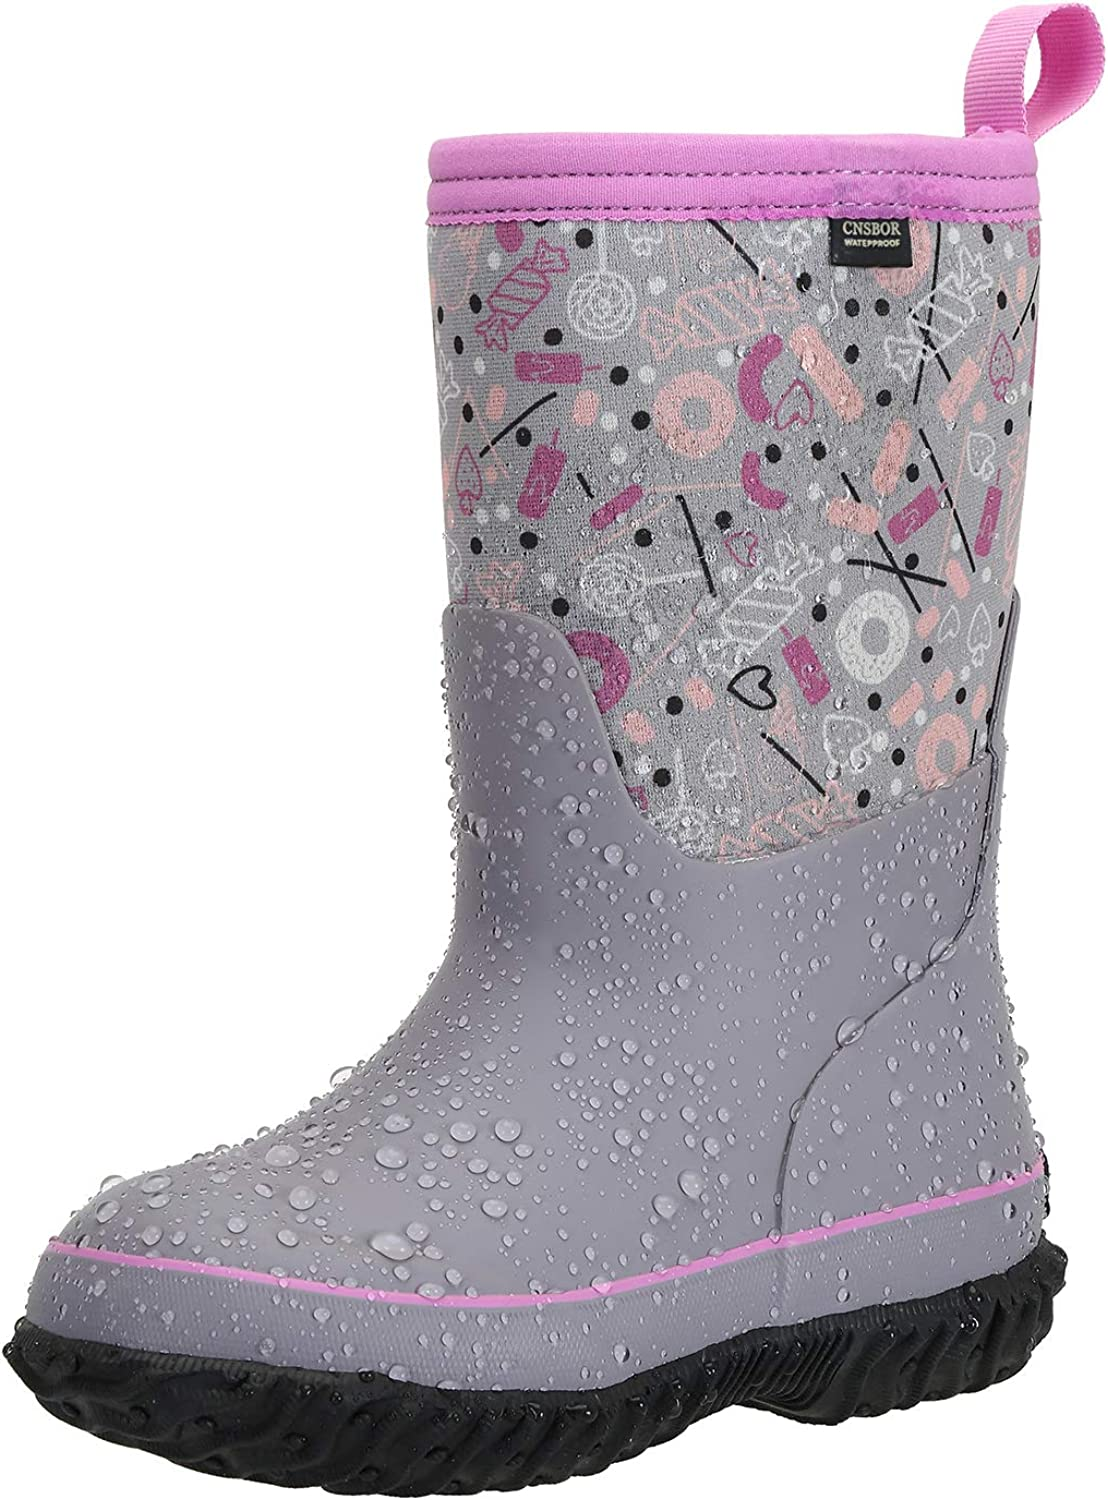 CNSBOR Kids Waterproof Insulated Rubber Neoprene with Rain Boots Max 63% OFF Limited time cheap sale